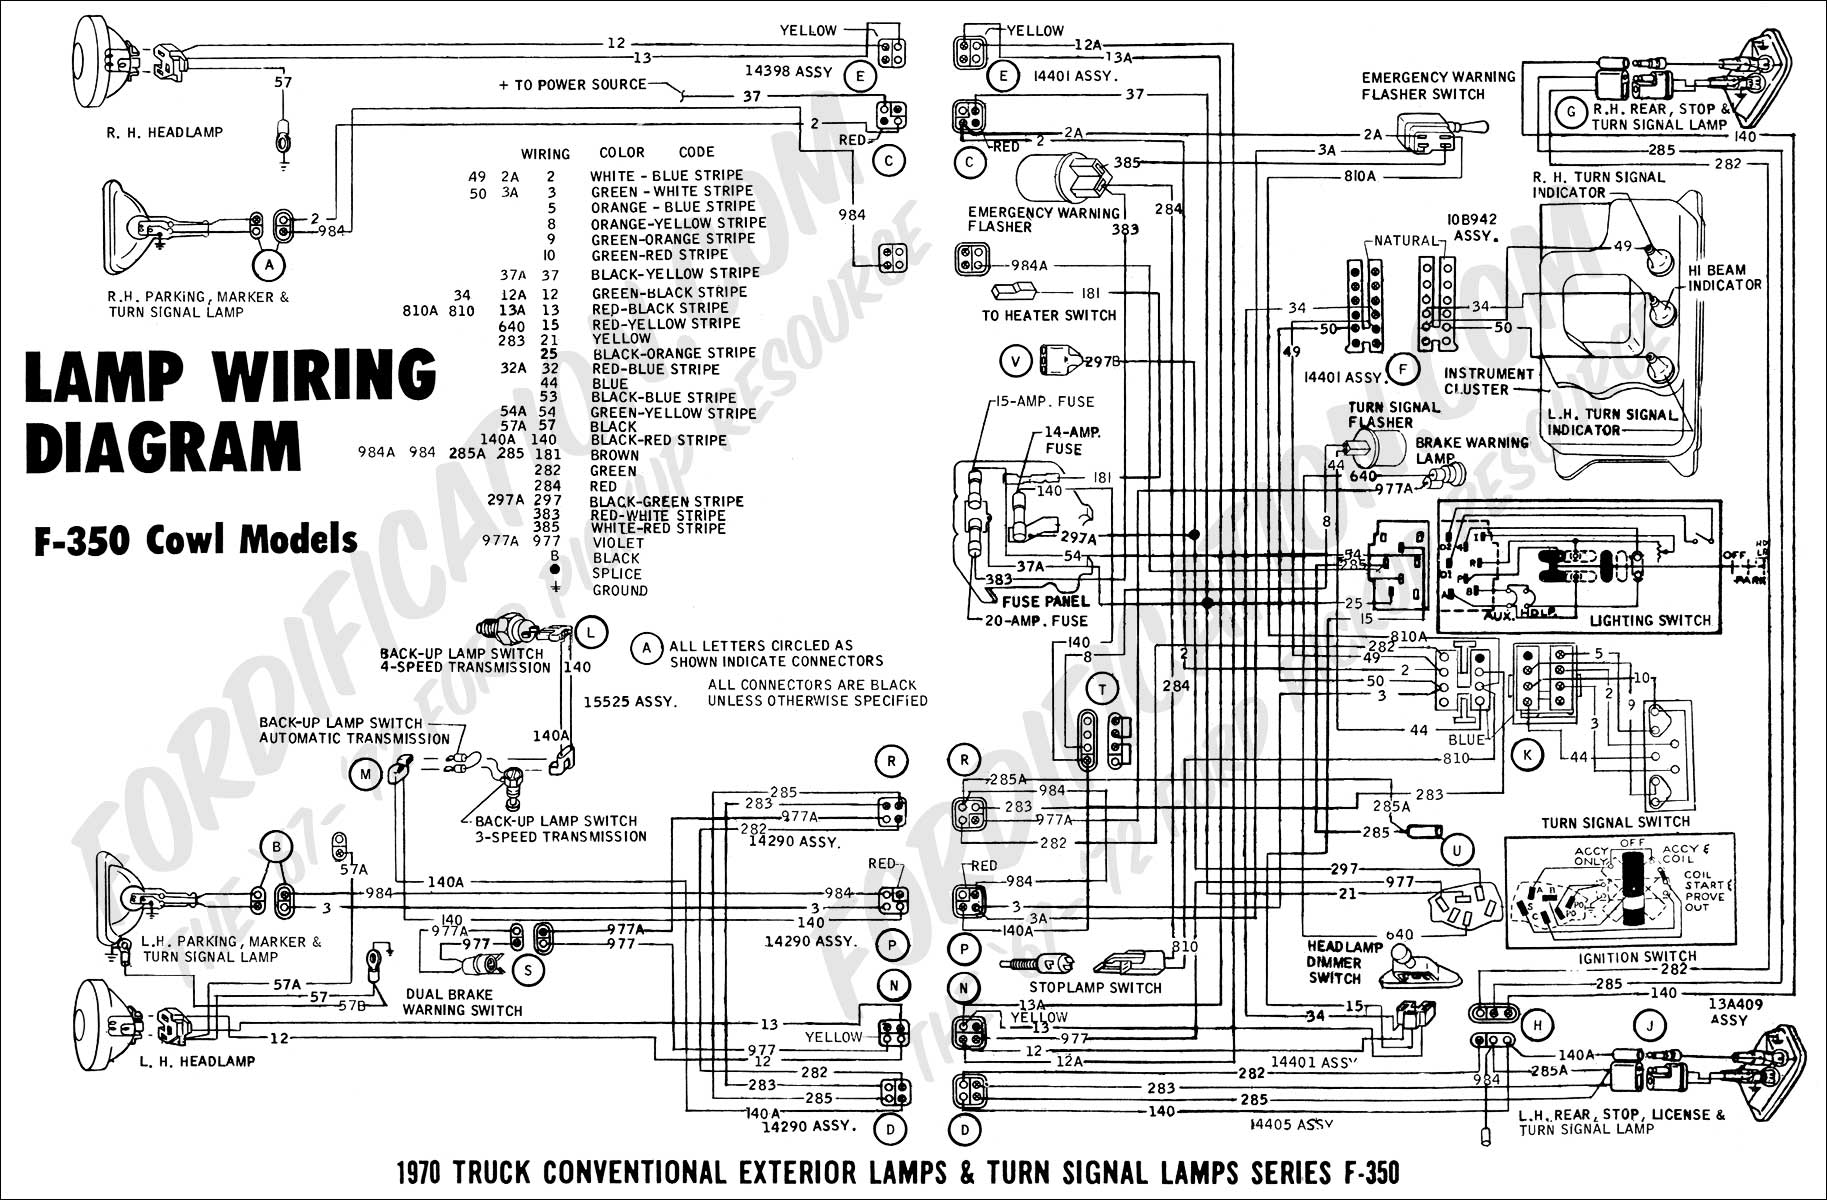 Trailer Light Wiring Schematic Ford Manuals Schema Diagrams Schematics Diagram Home 64 Falcon